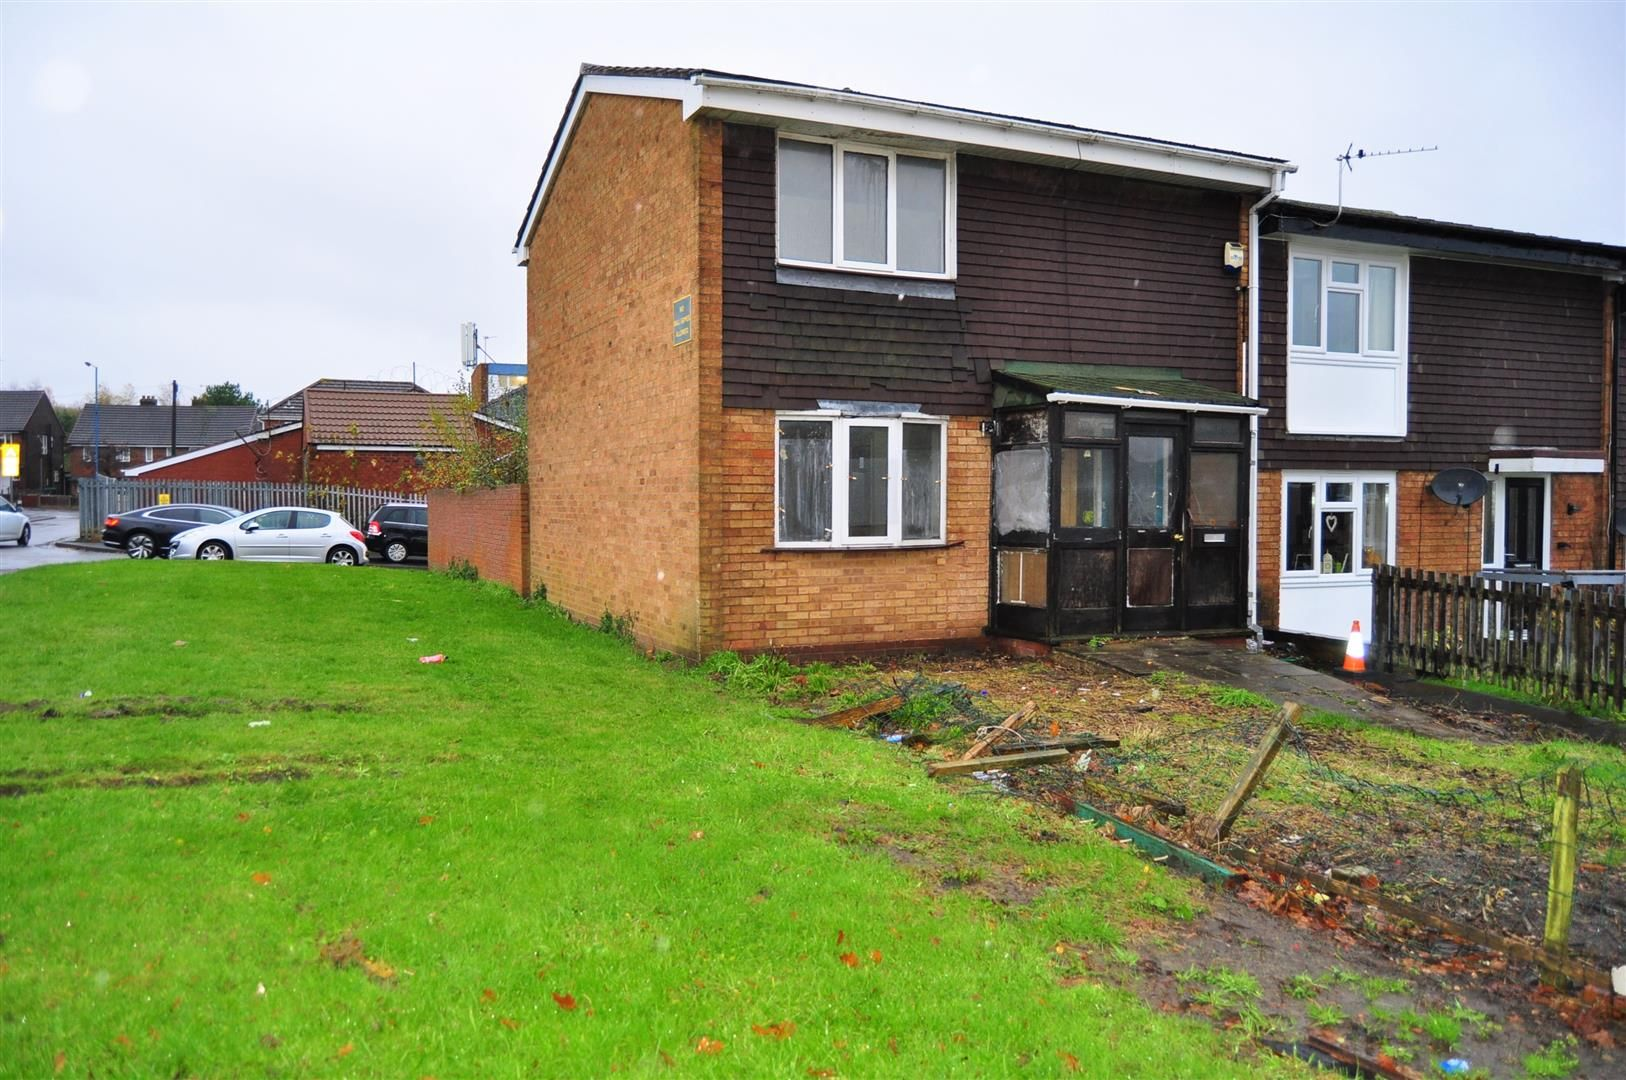 2 bed end-of-terrace for sale, B65